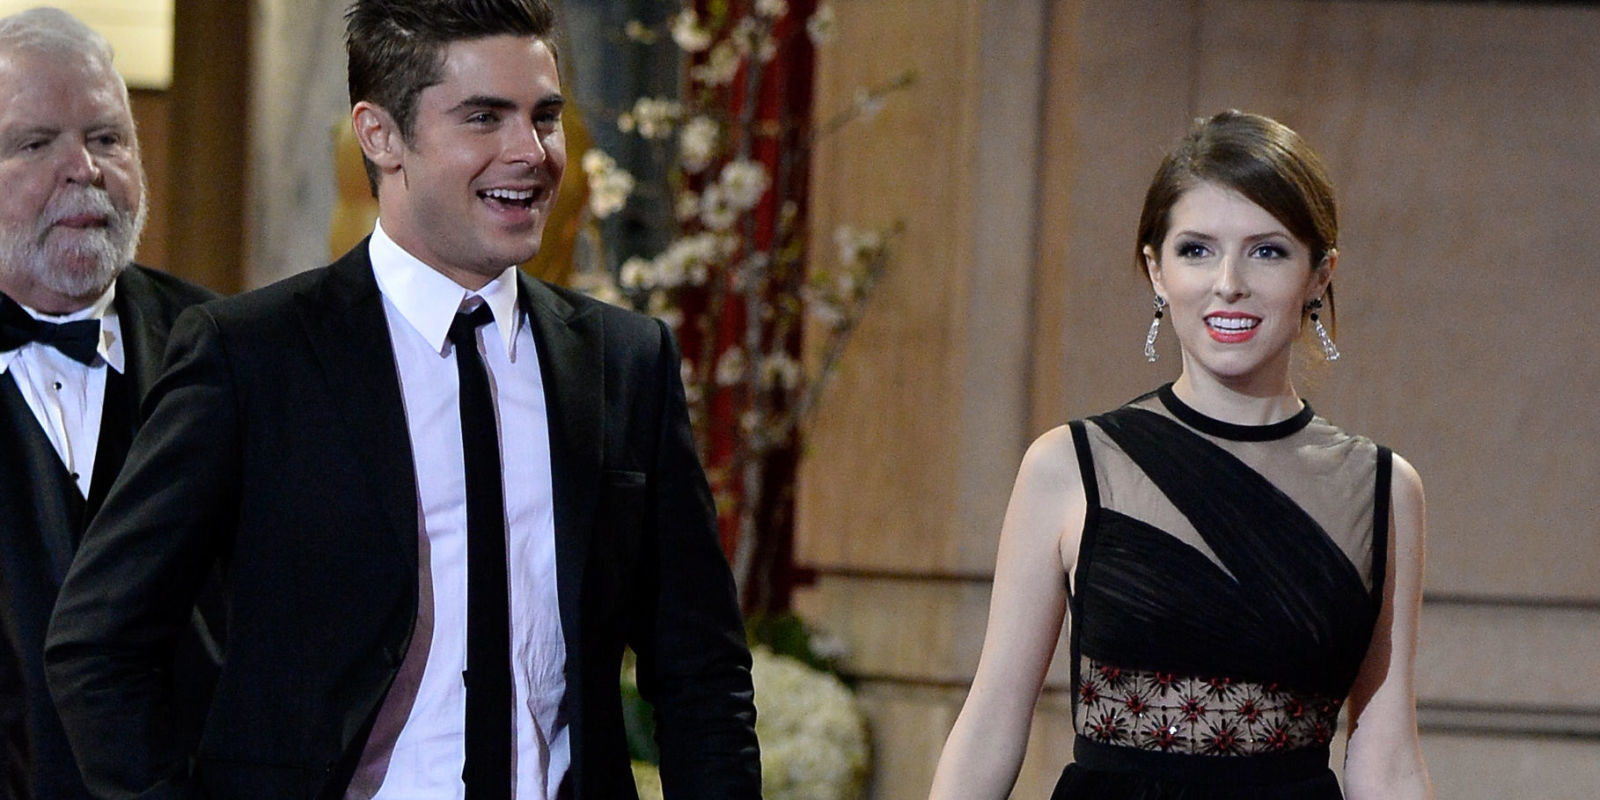 zac efron dating anna kendrick You won't believe what zac efron did to her anna's boyfriend — who she was having sex with regularly — told her anna kendrick totally auditioned for.